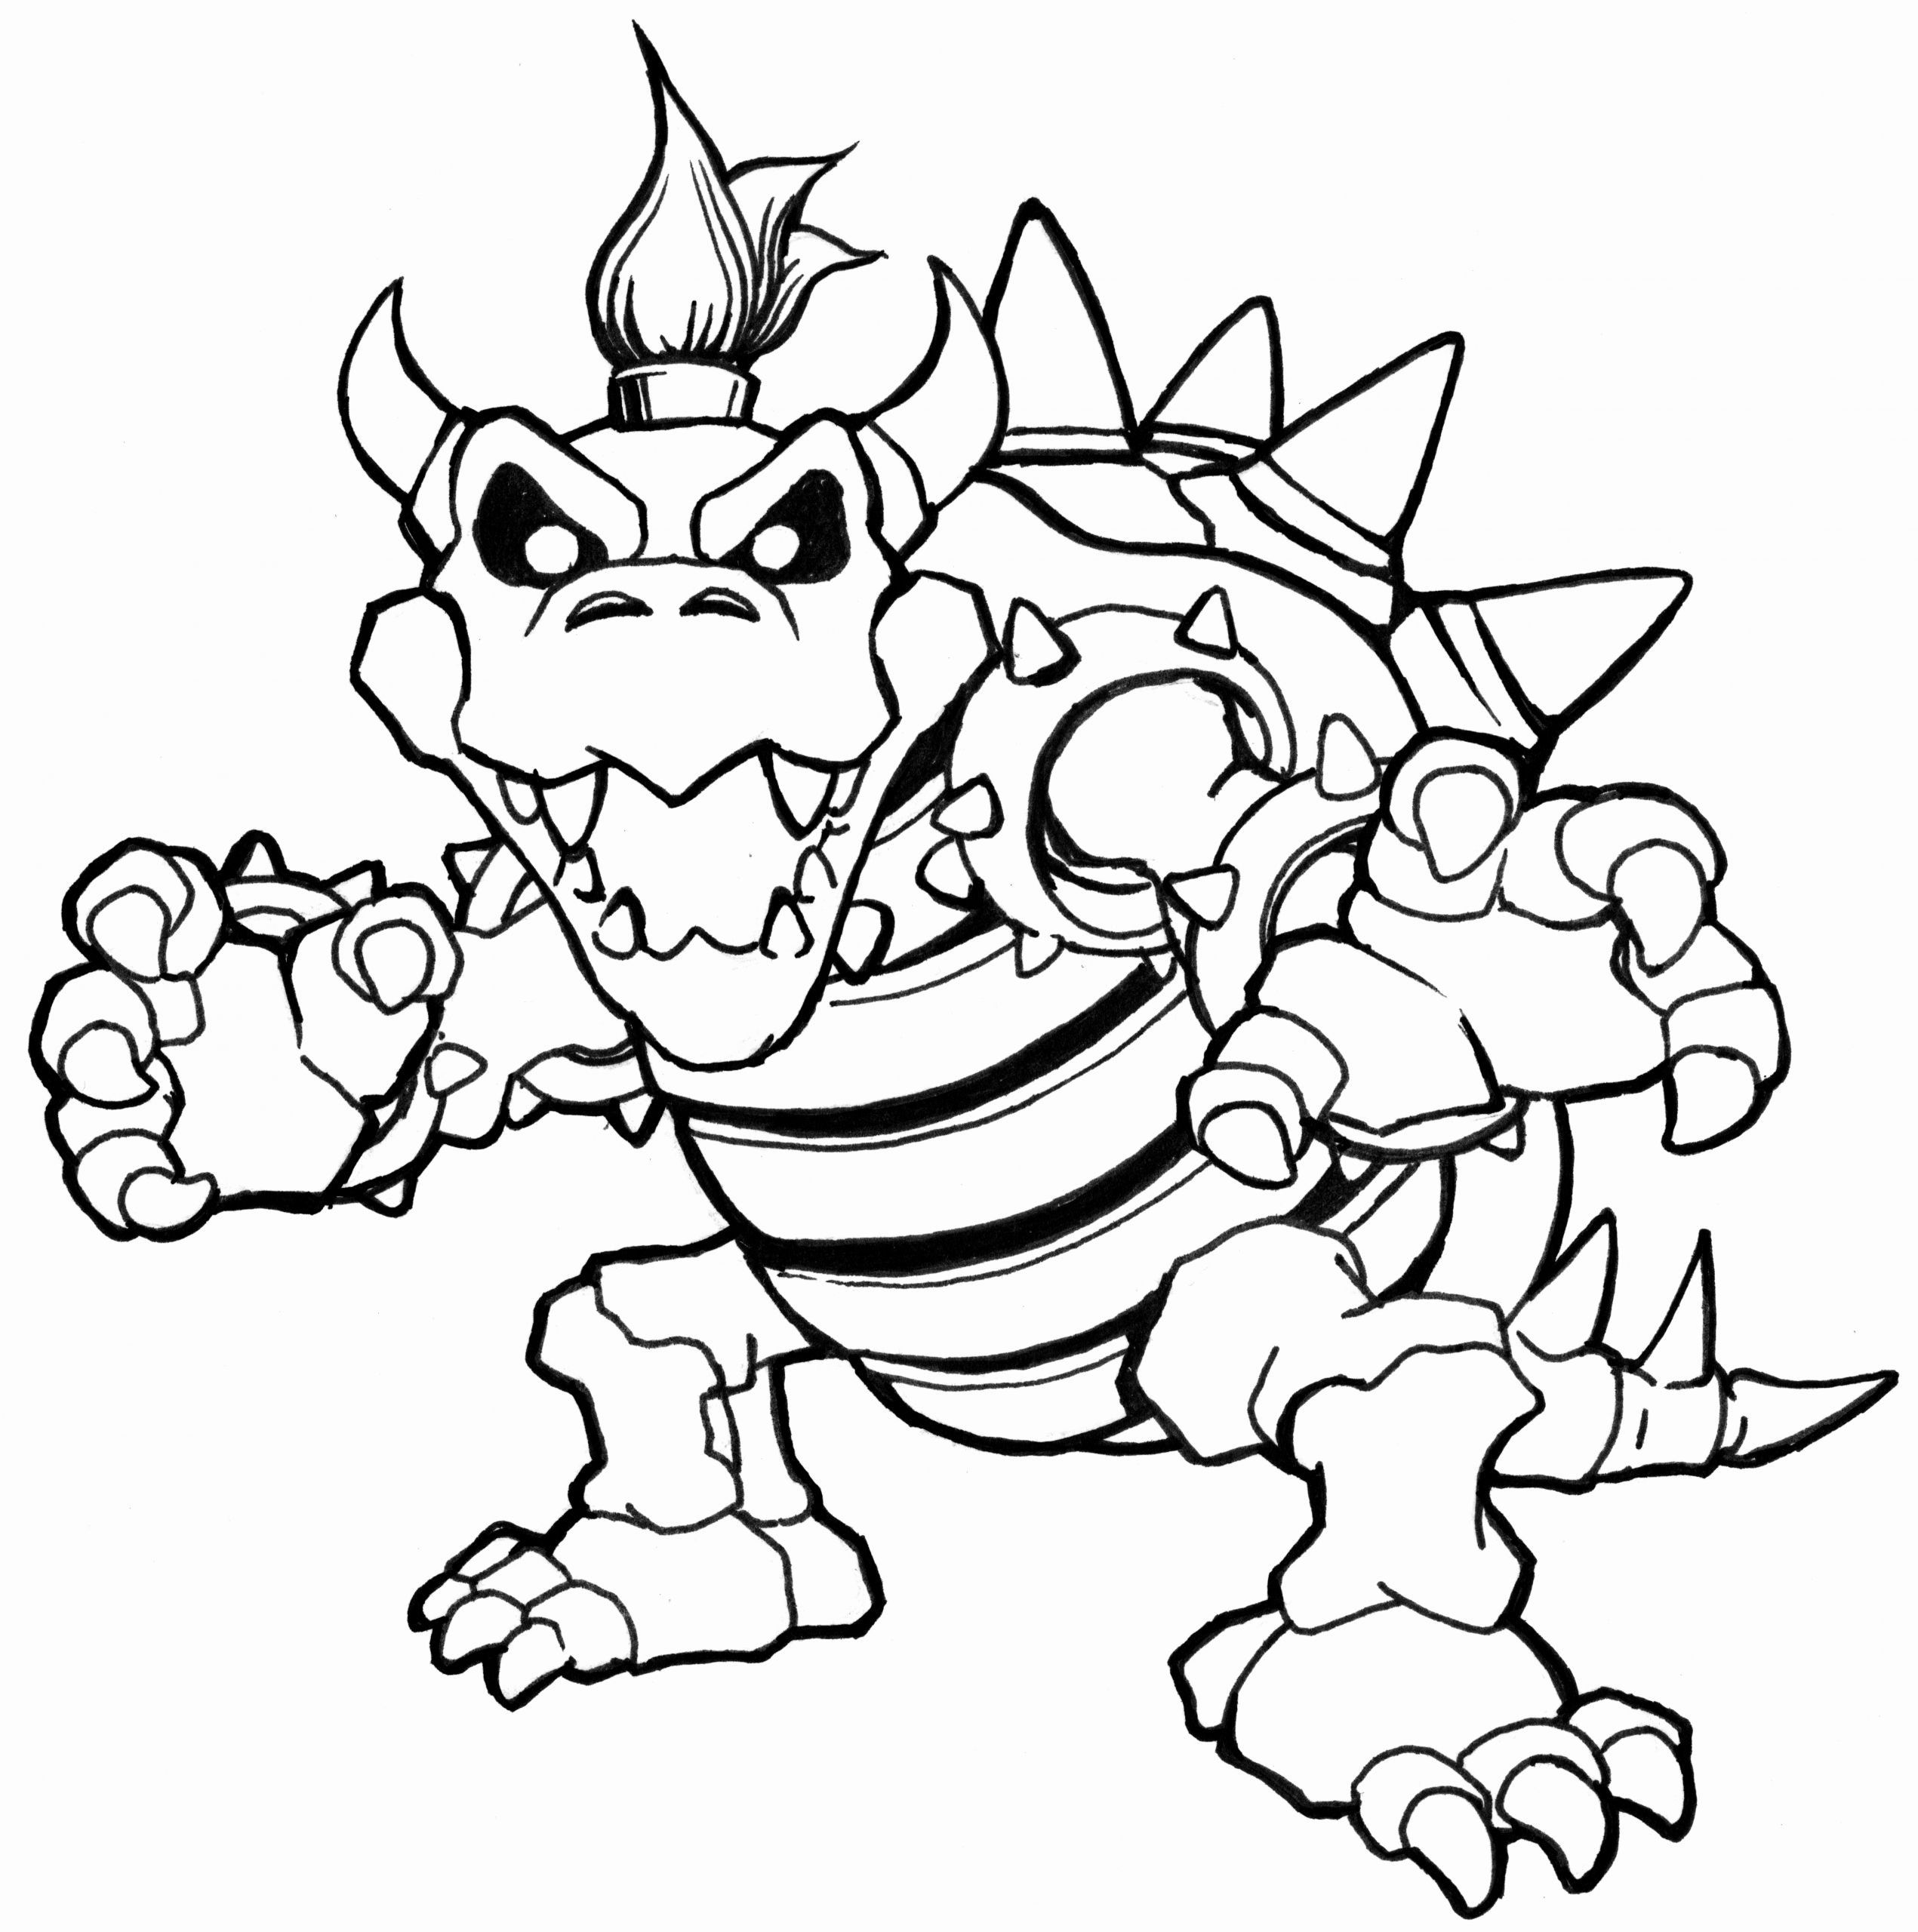 Mario Coloring Pages Printable Unique Bowser Coloring Bowser Coloring Pages Dry Bowser M In 2020 Mario Coloring Pages Super Mario Coloring Pages Cartoon Coloring Pages